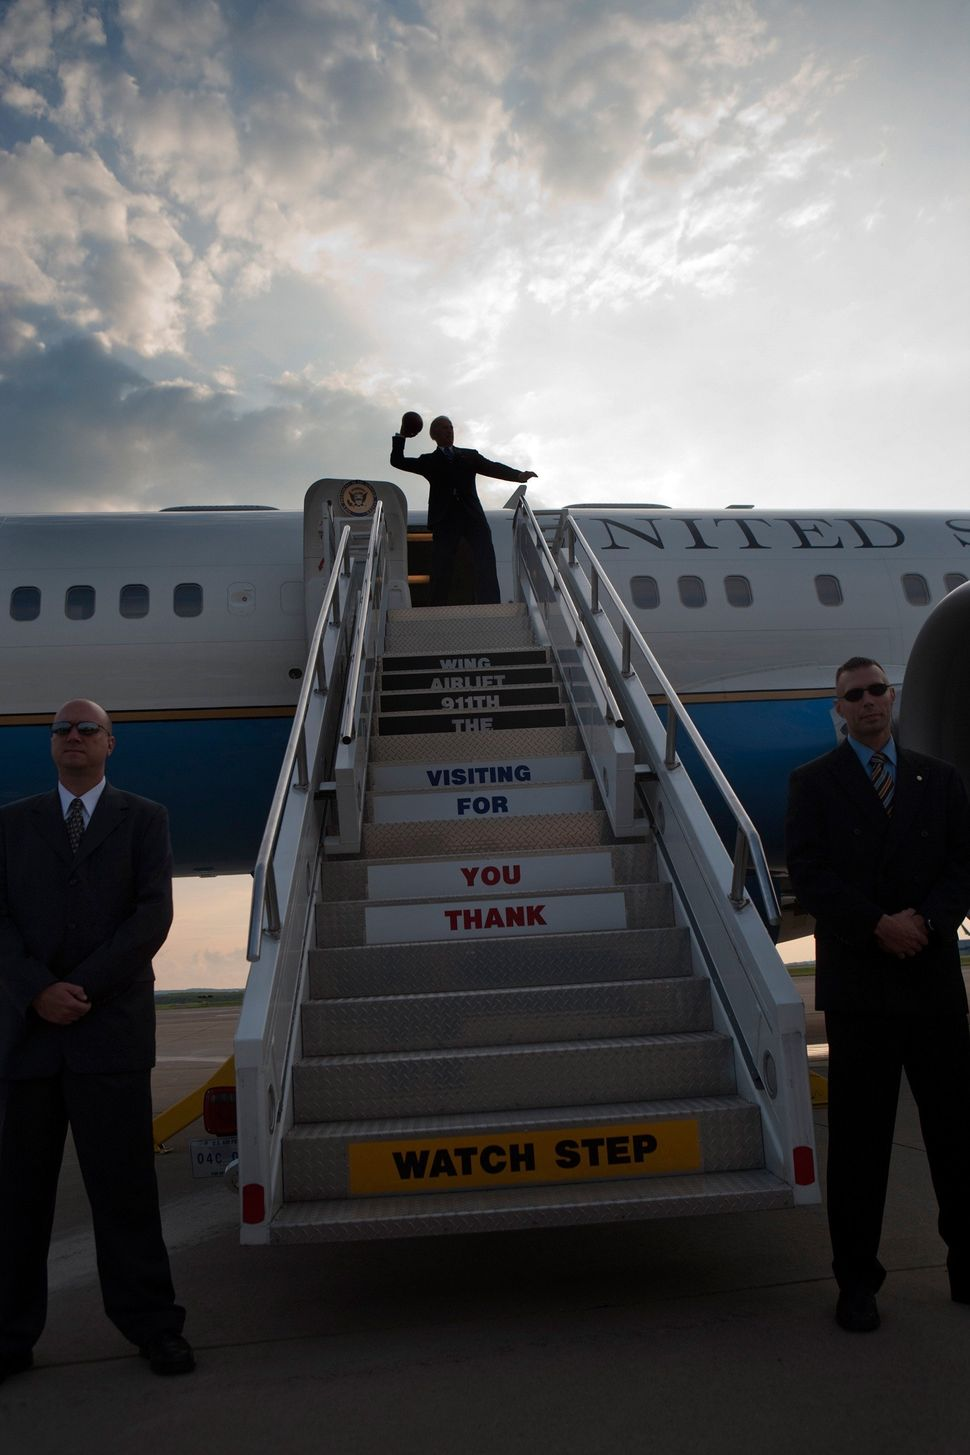 Vice President Joe Biden throws a football from the top of the stairs before boarding Air Force Two at Pittsburgh Internation